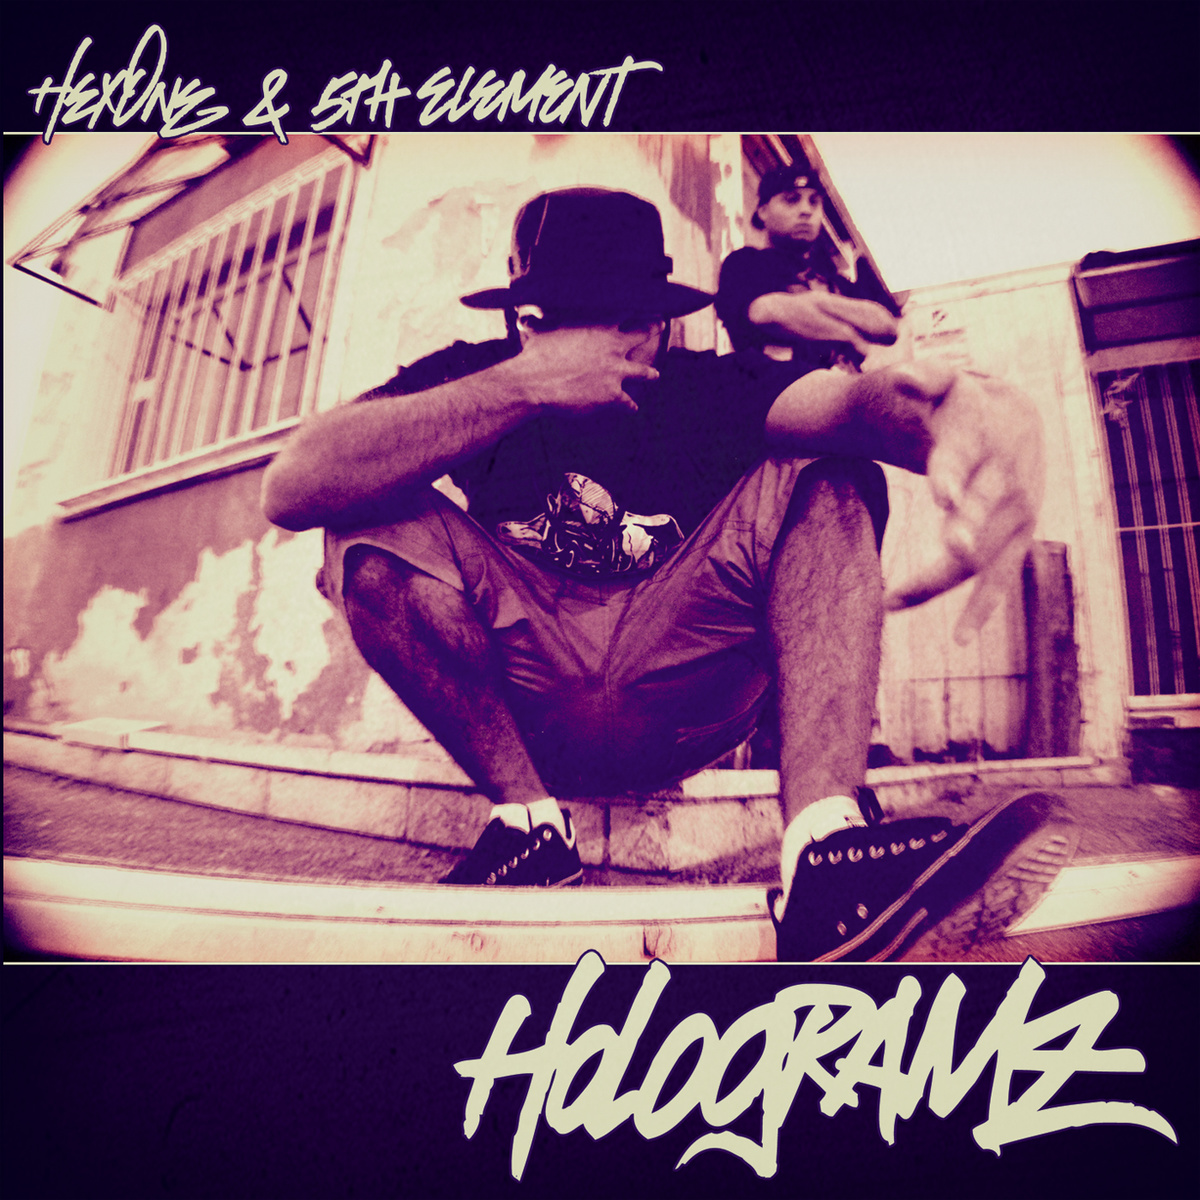 Hex_one___5th_element_-_hologramz